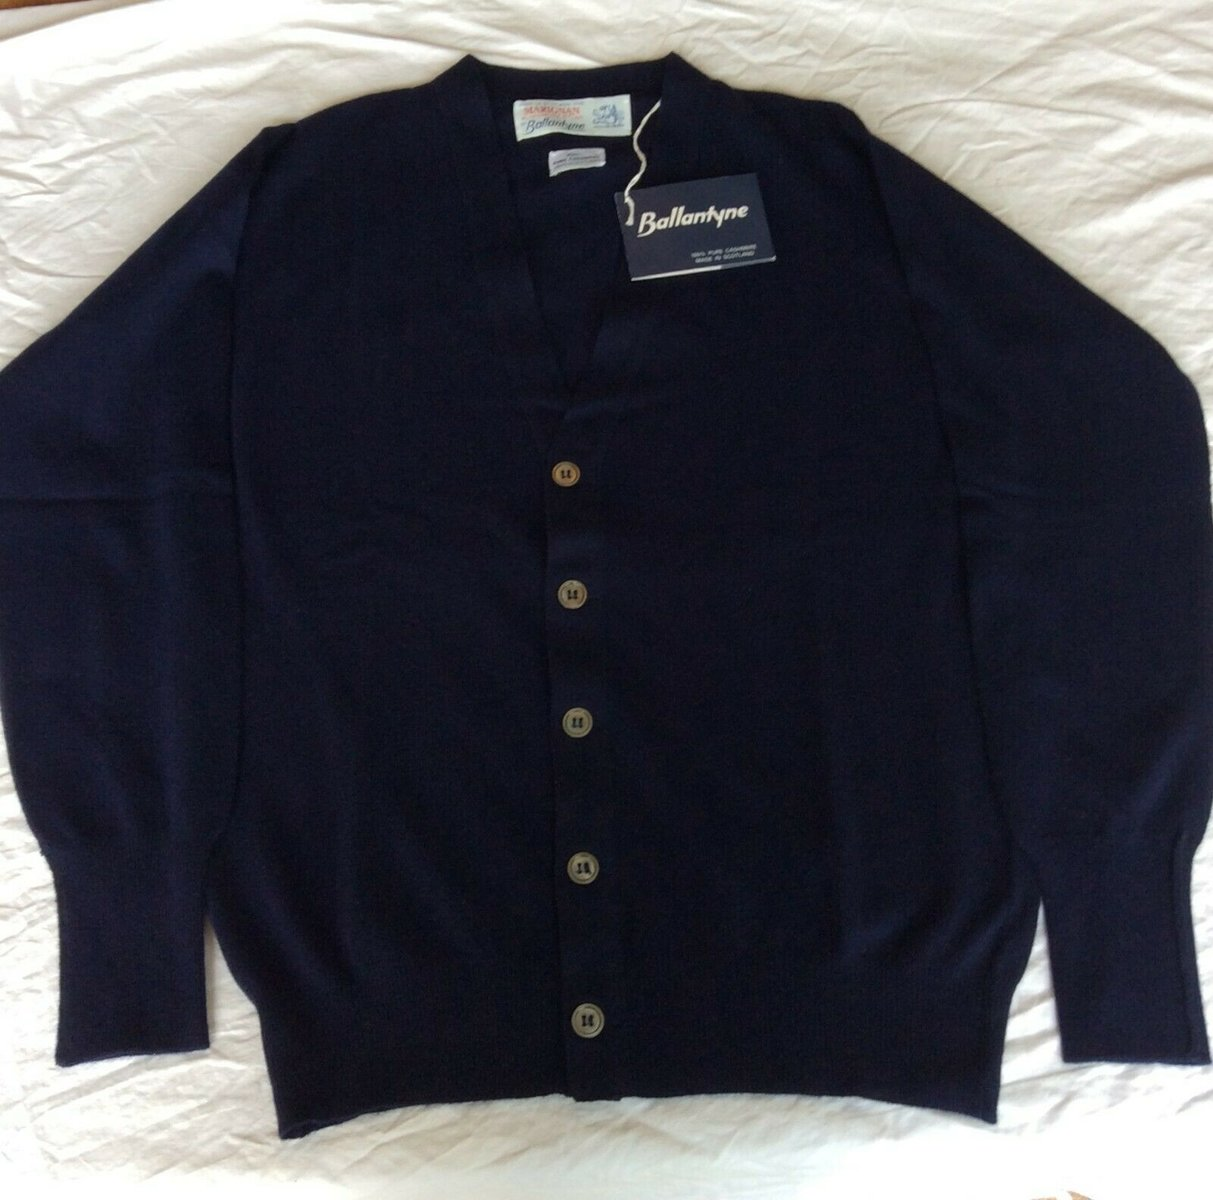 Ballantyne Vintage Men's Cashmere Navy Pullman Cardigan, New with tags Size 38 3.jpg